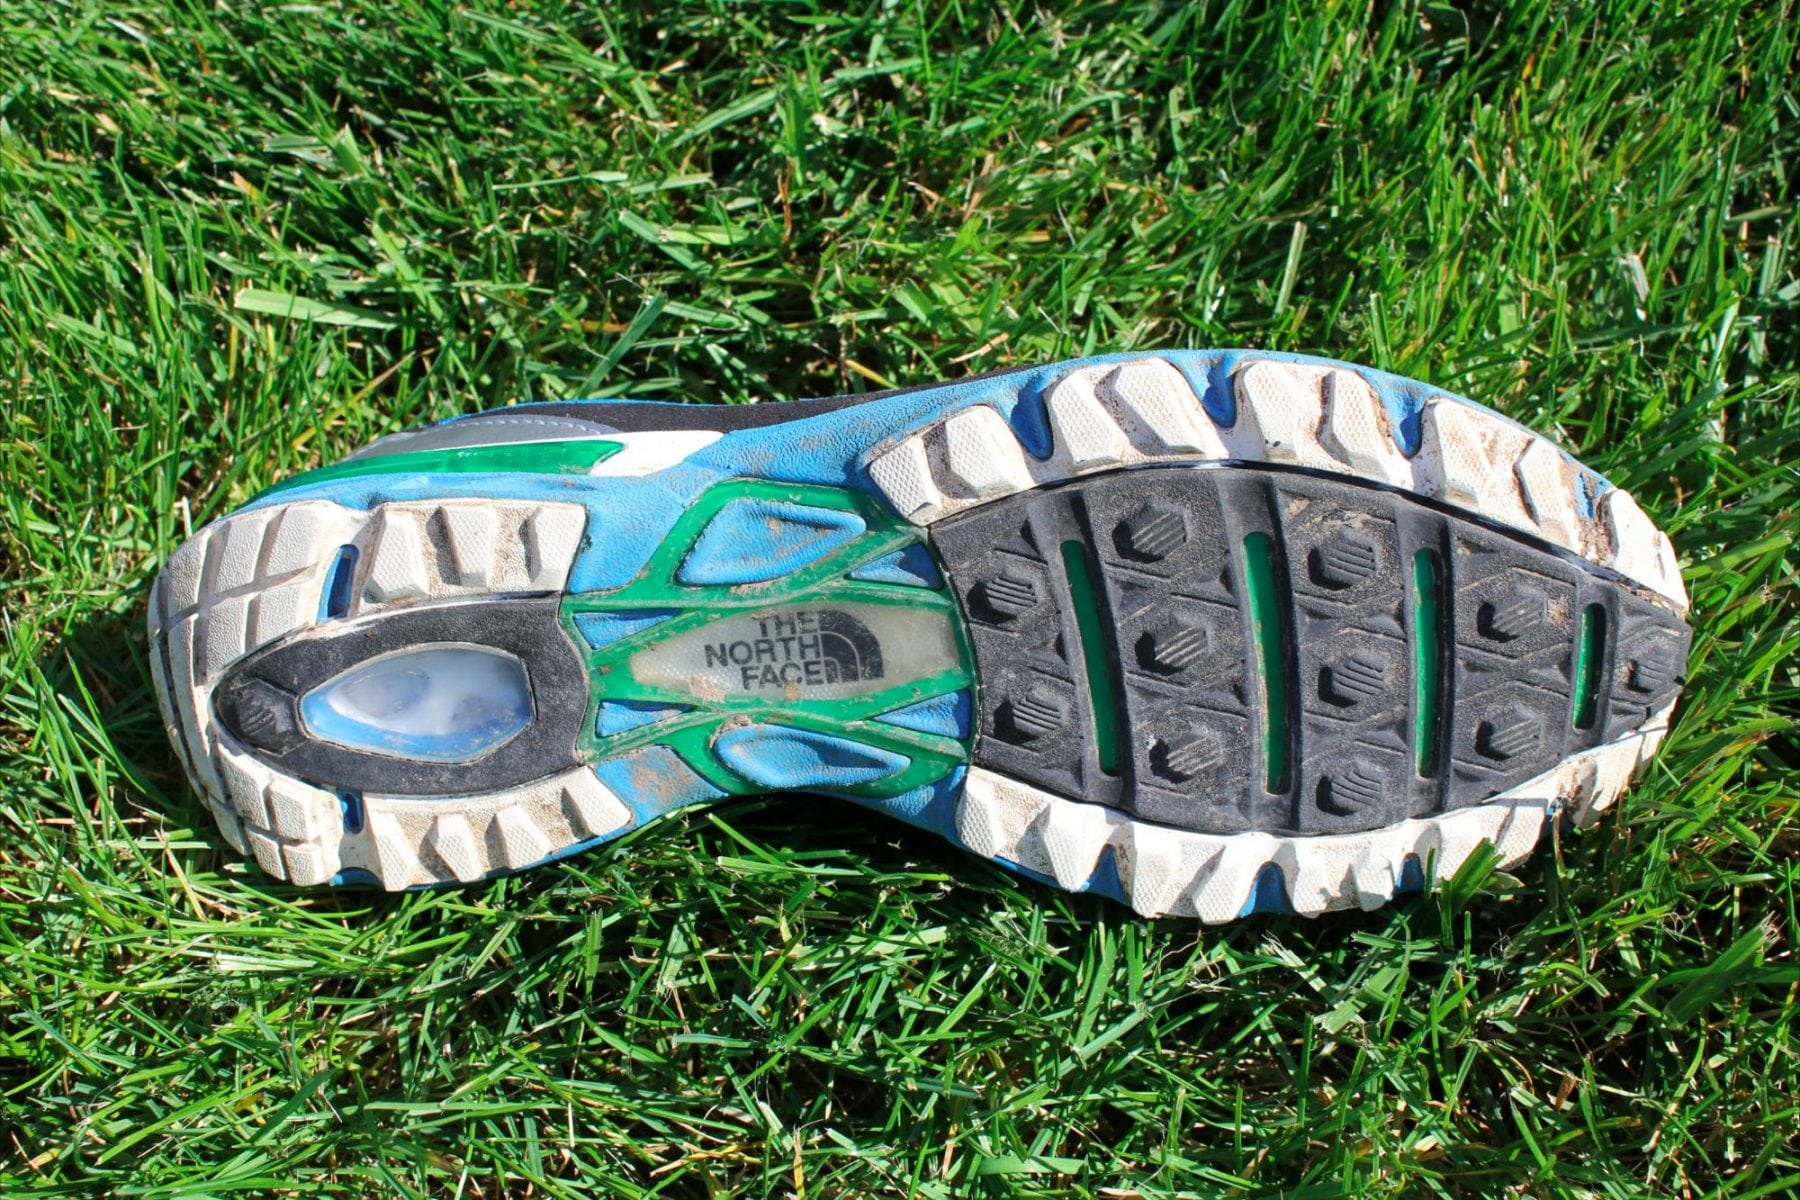 The North Face Singe-Track Hayasa - outsole